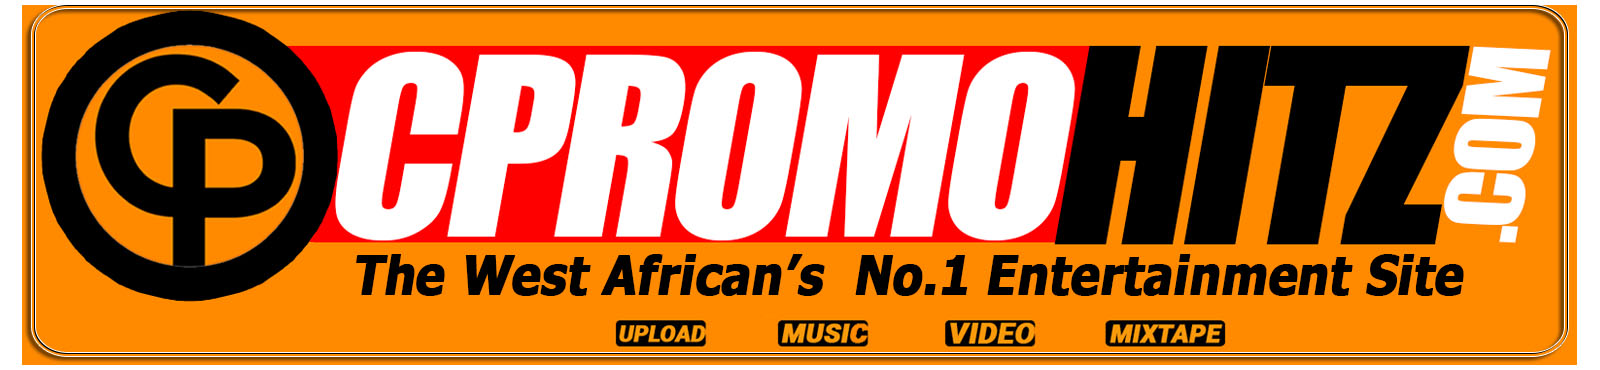 The West African No.1 Entertainment Site | Cpromohitz.com